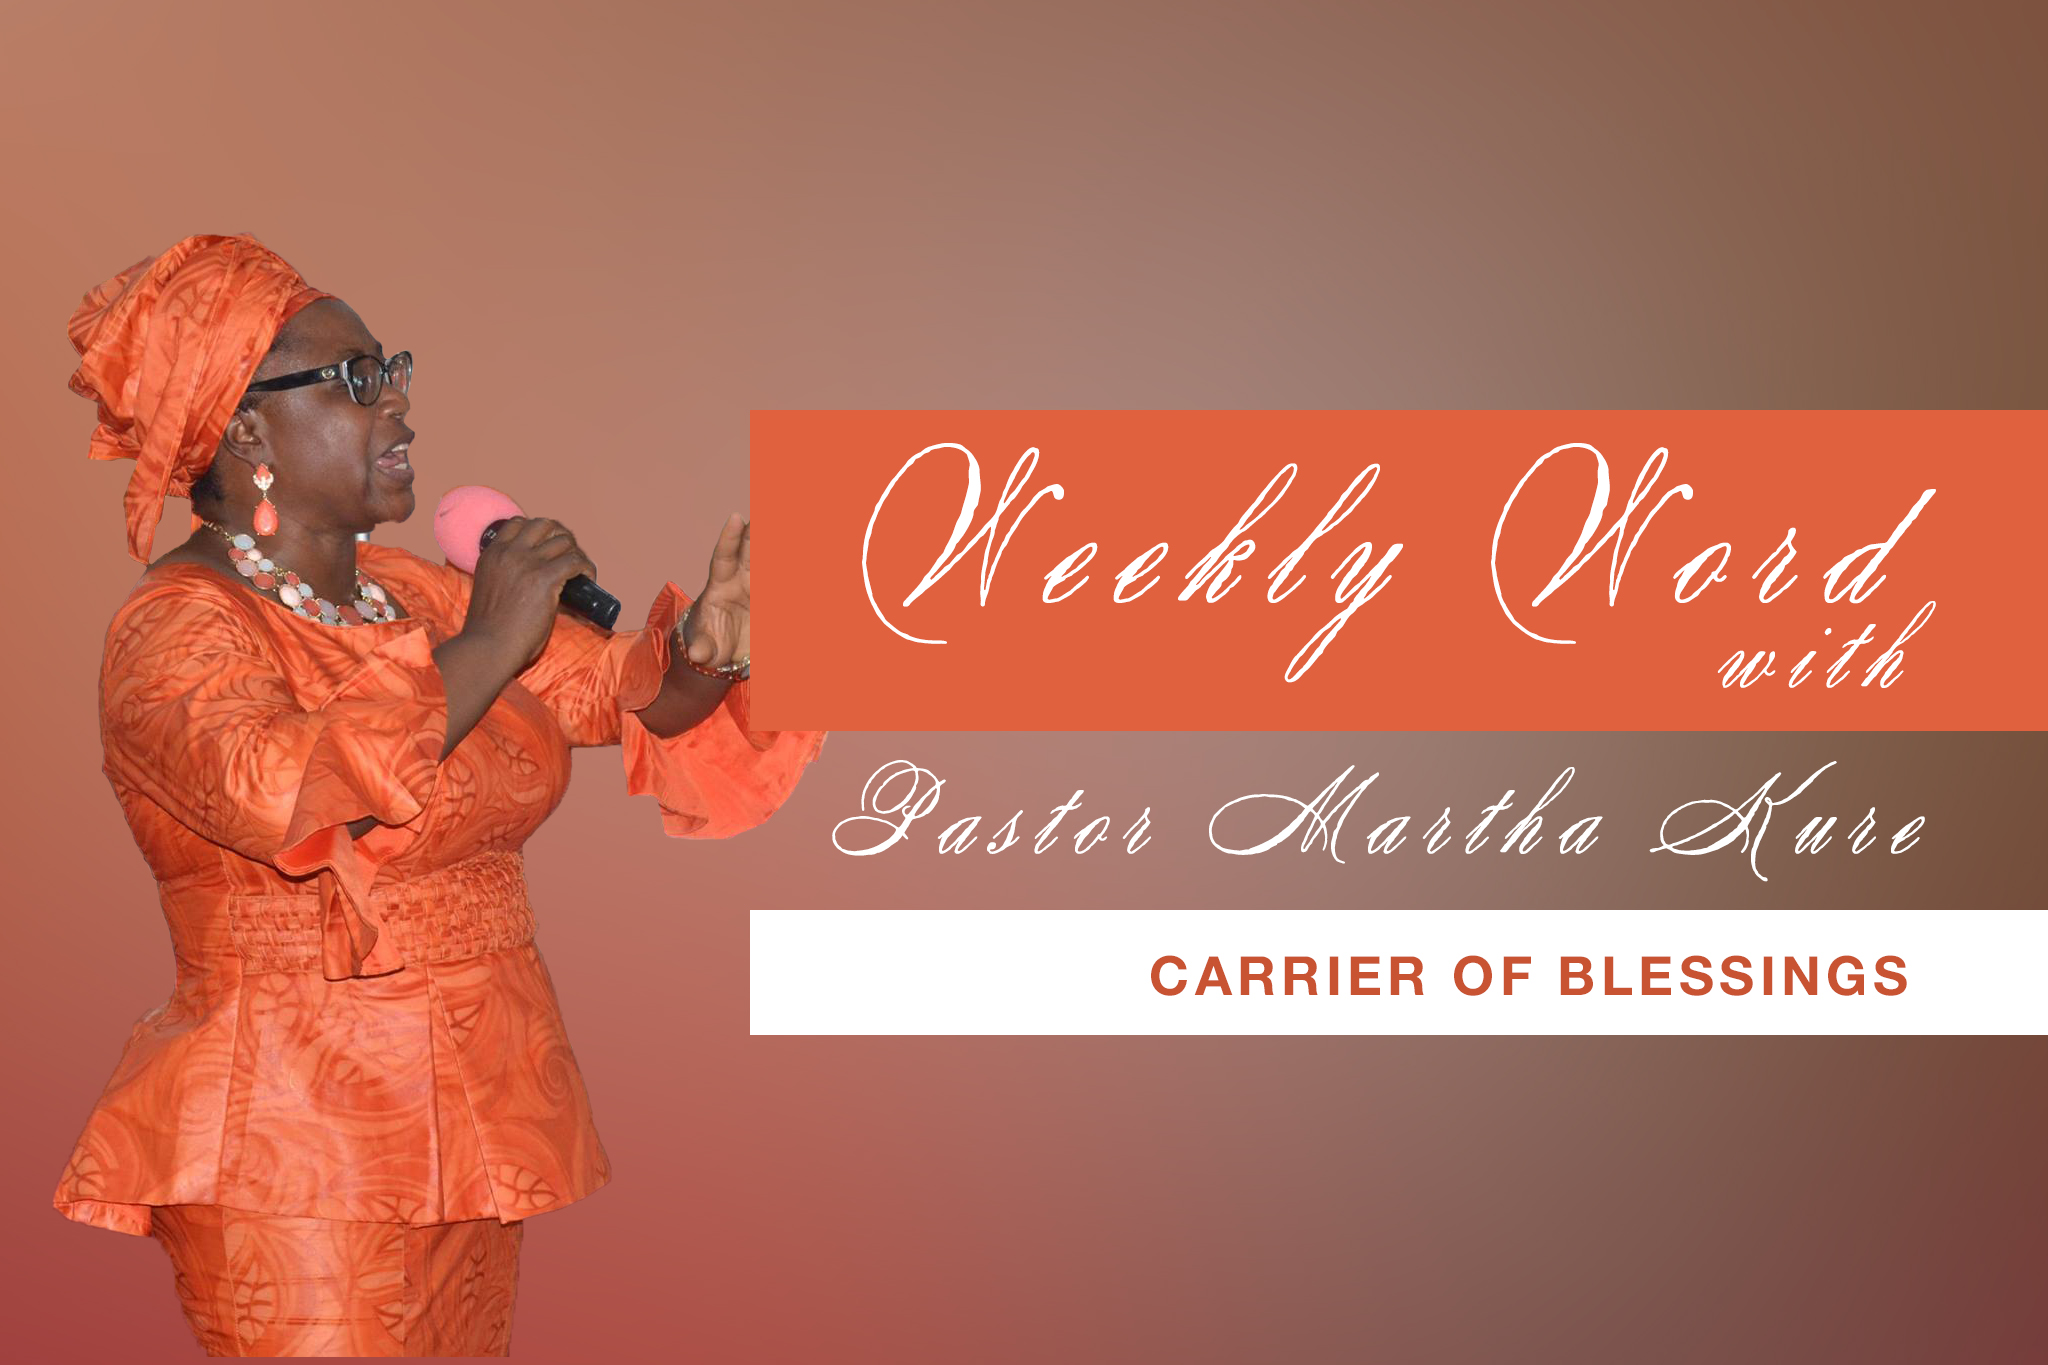 Elect Ladies: Carrier of Blessings